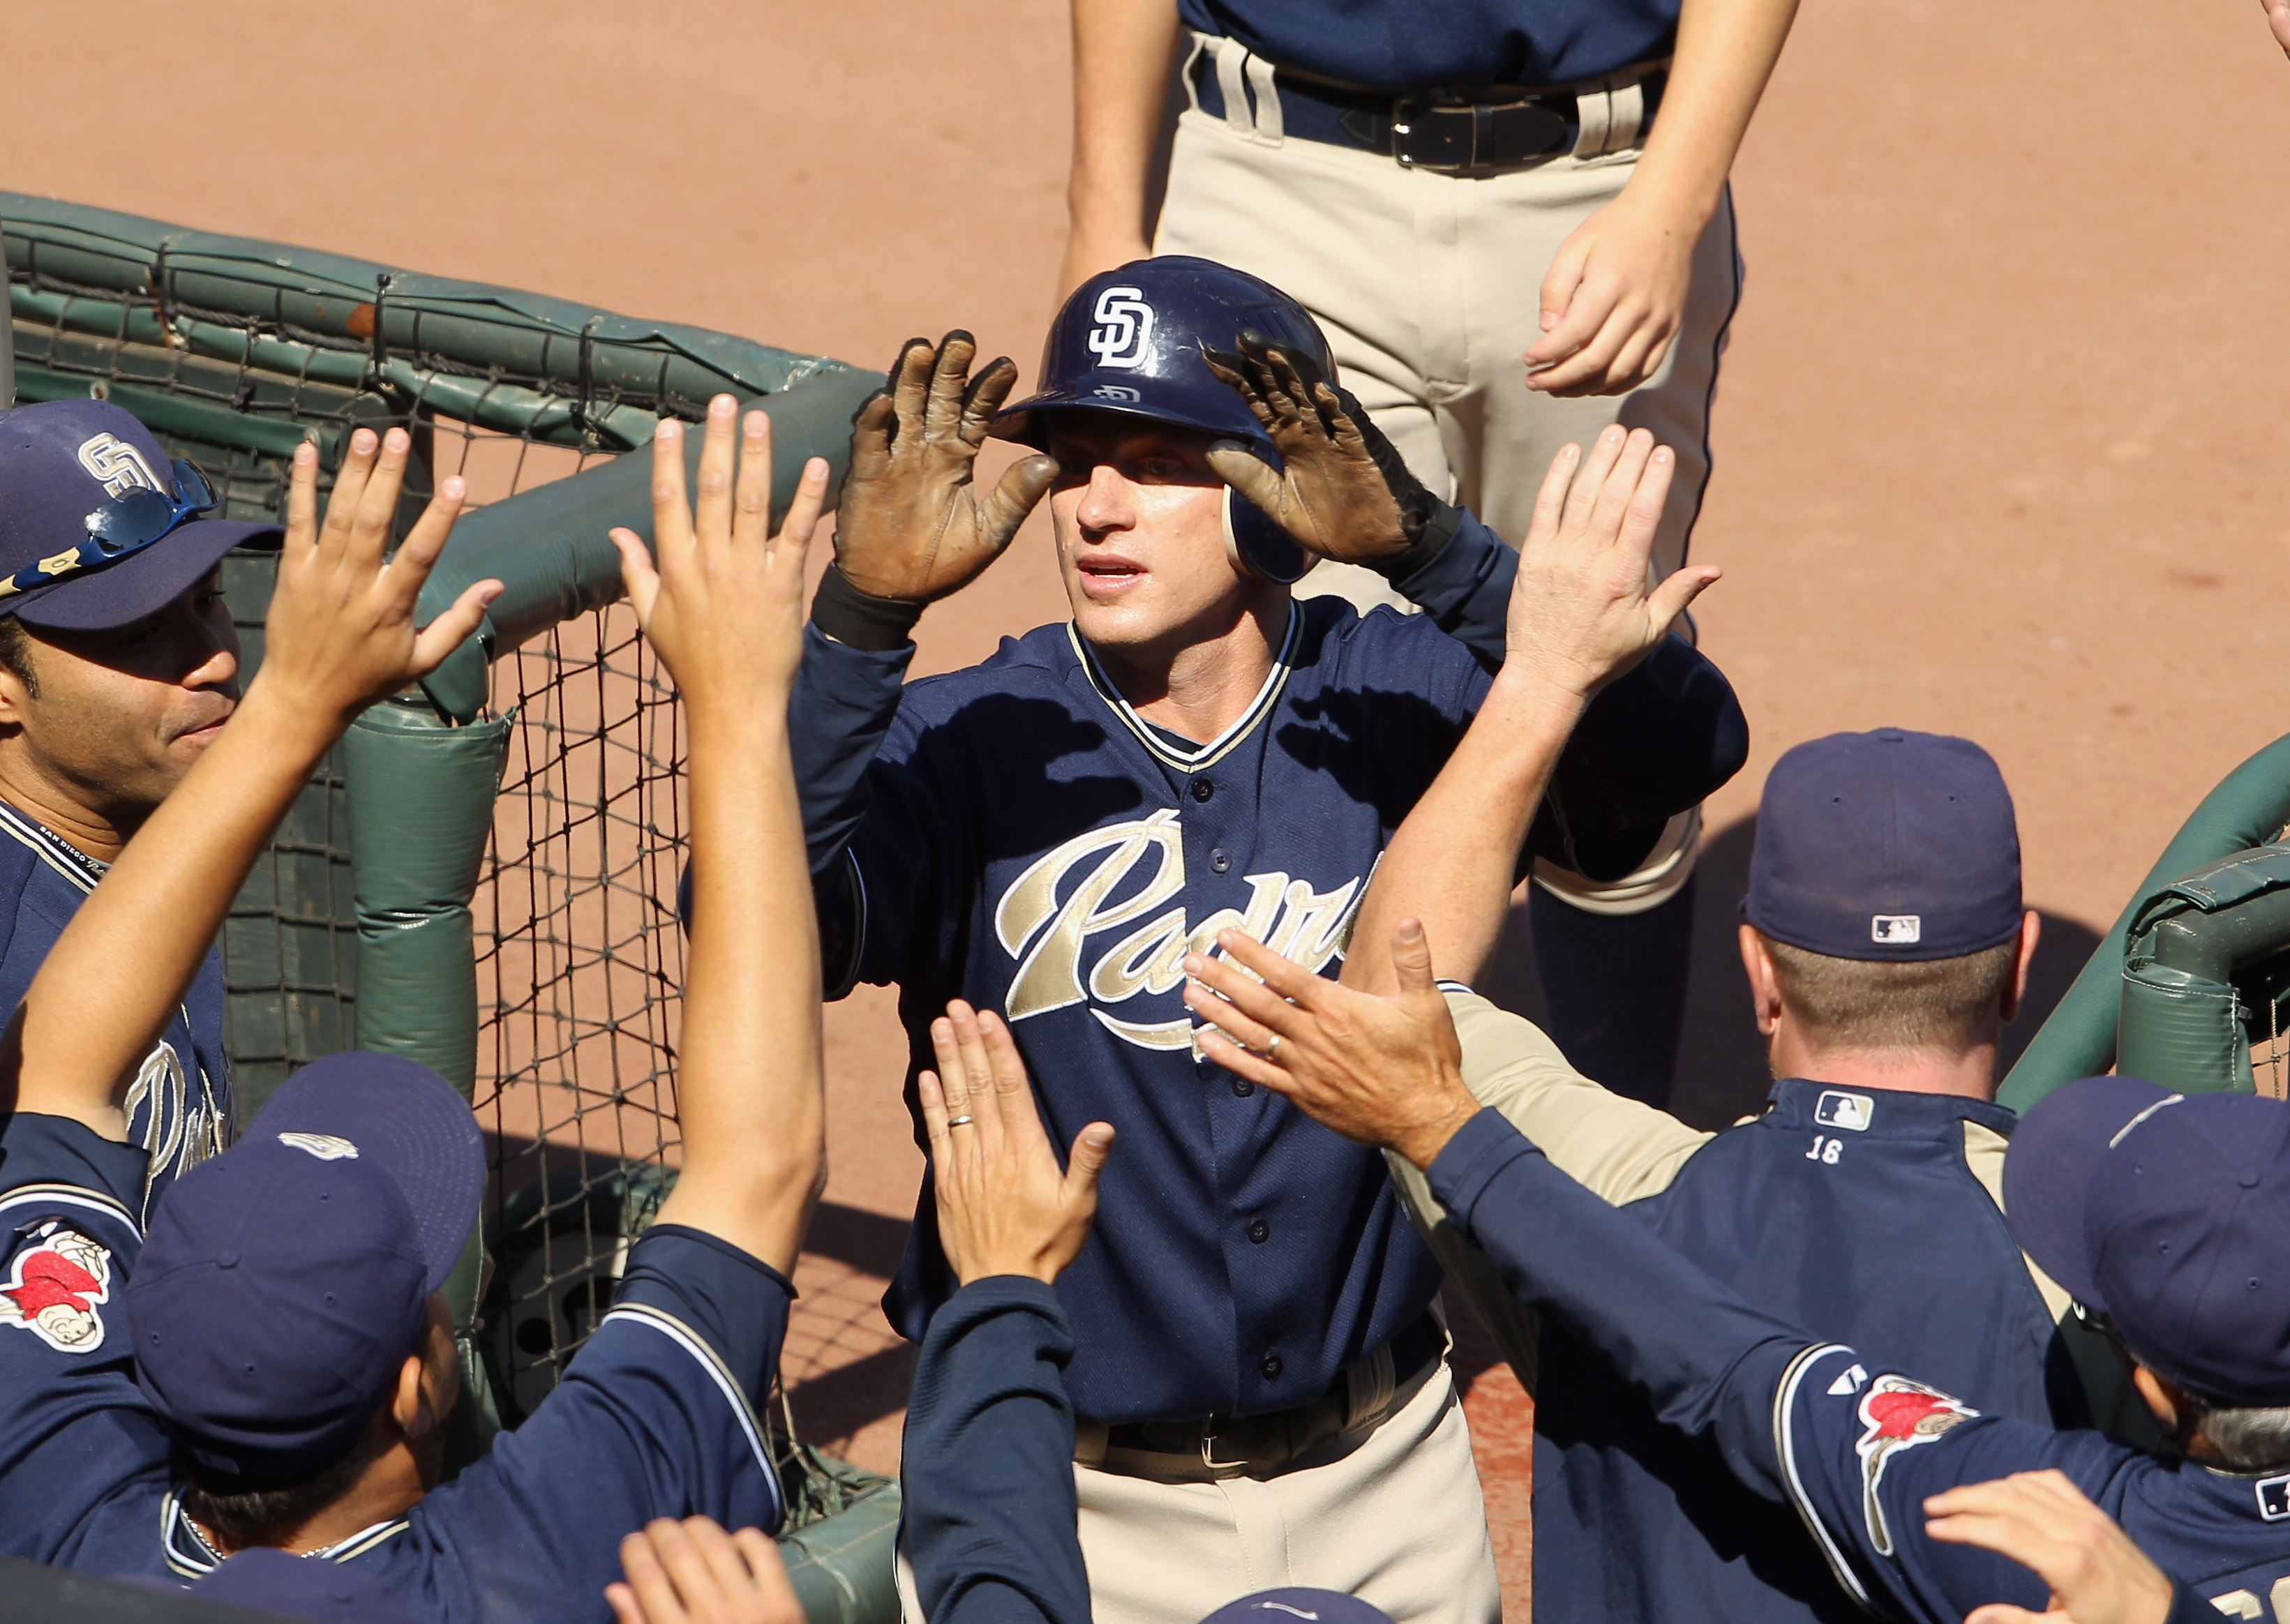 The Padres has a storybook 2010. Do they have enough to make it to the playoffs in 2011?